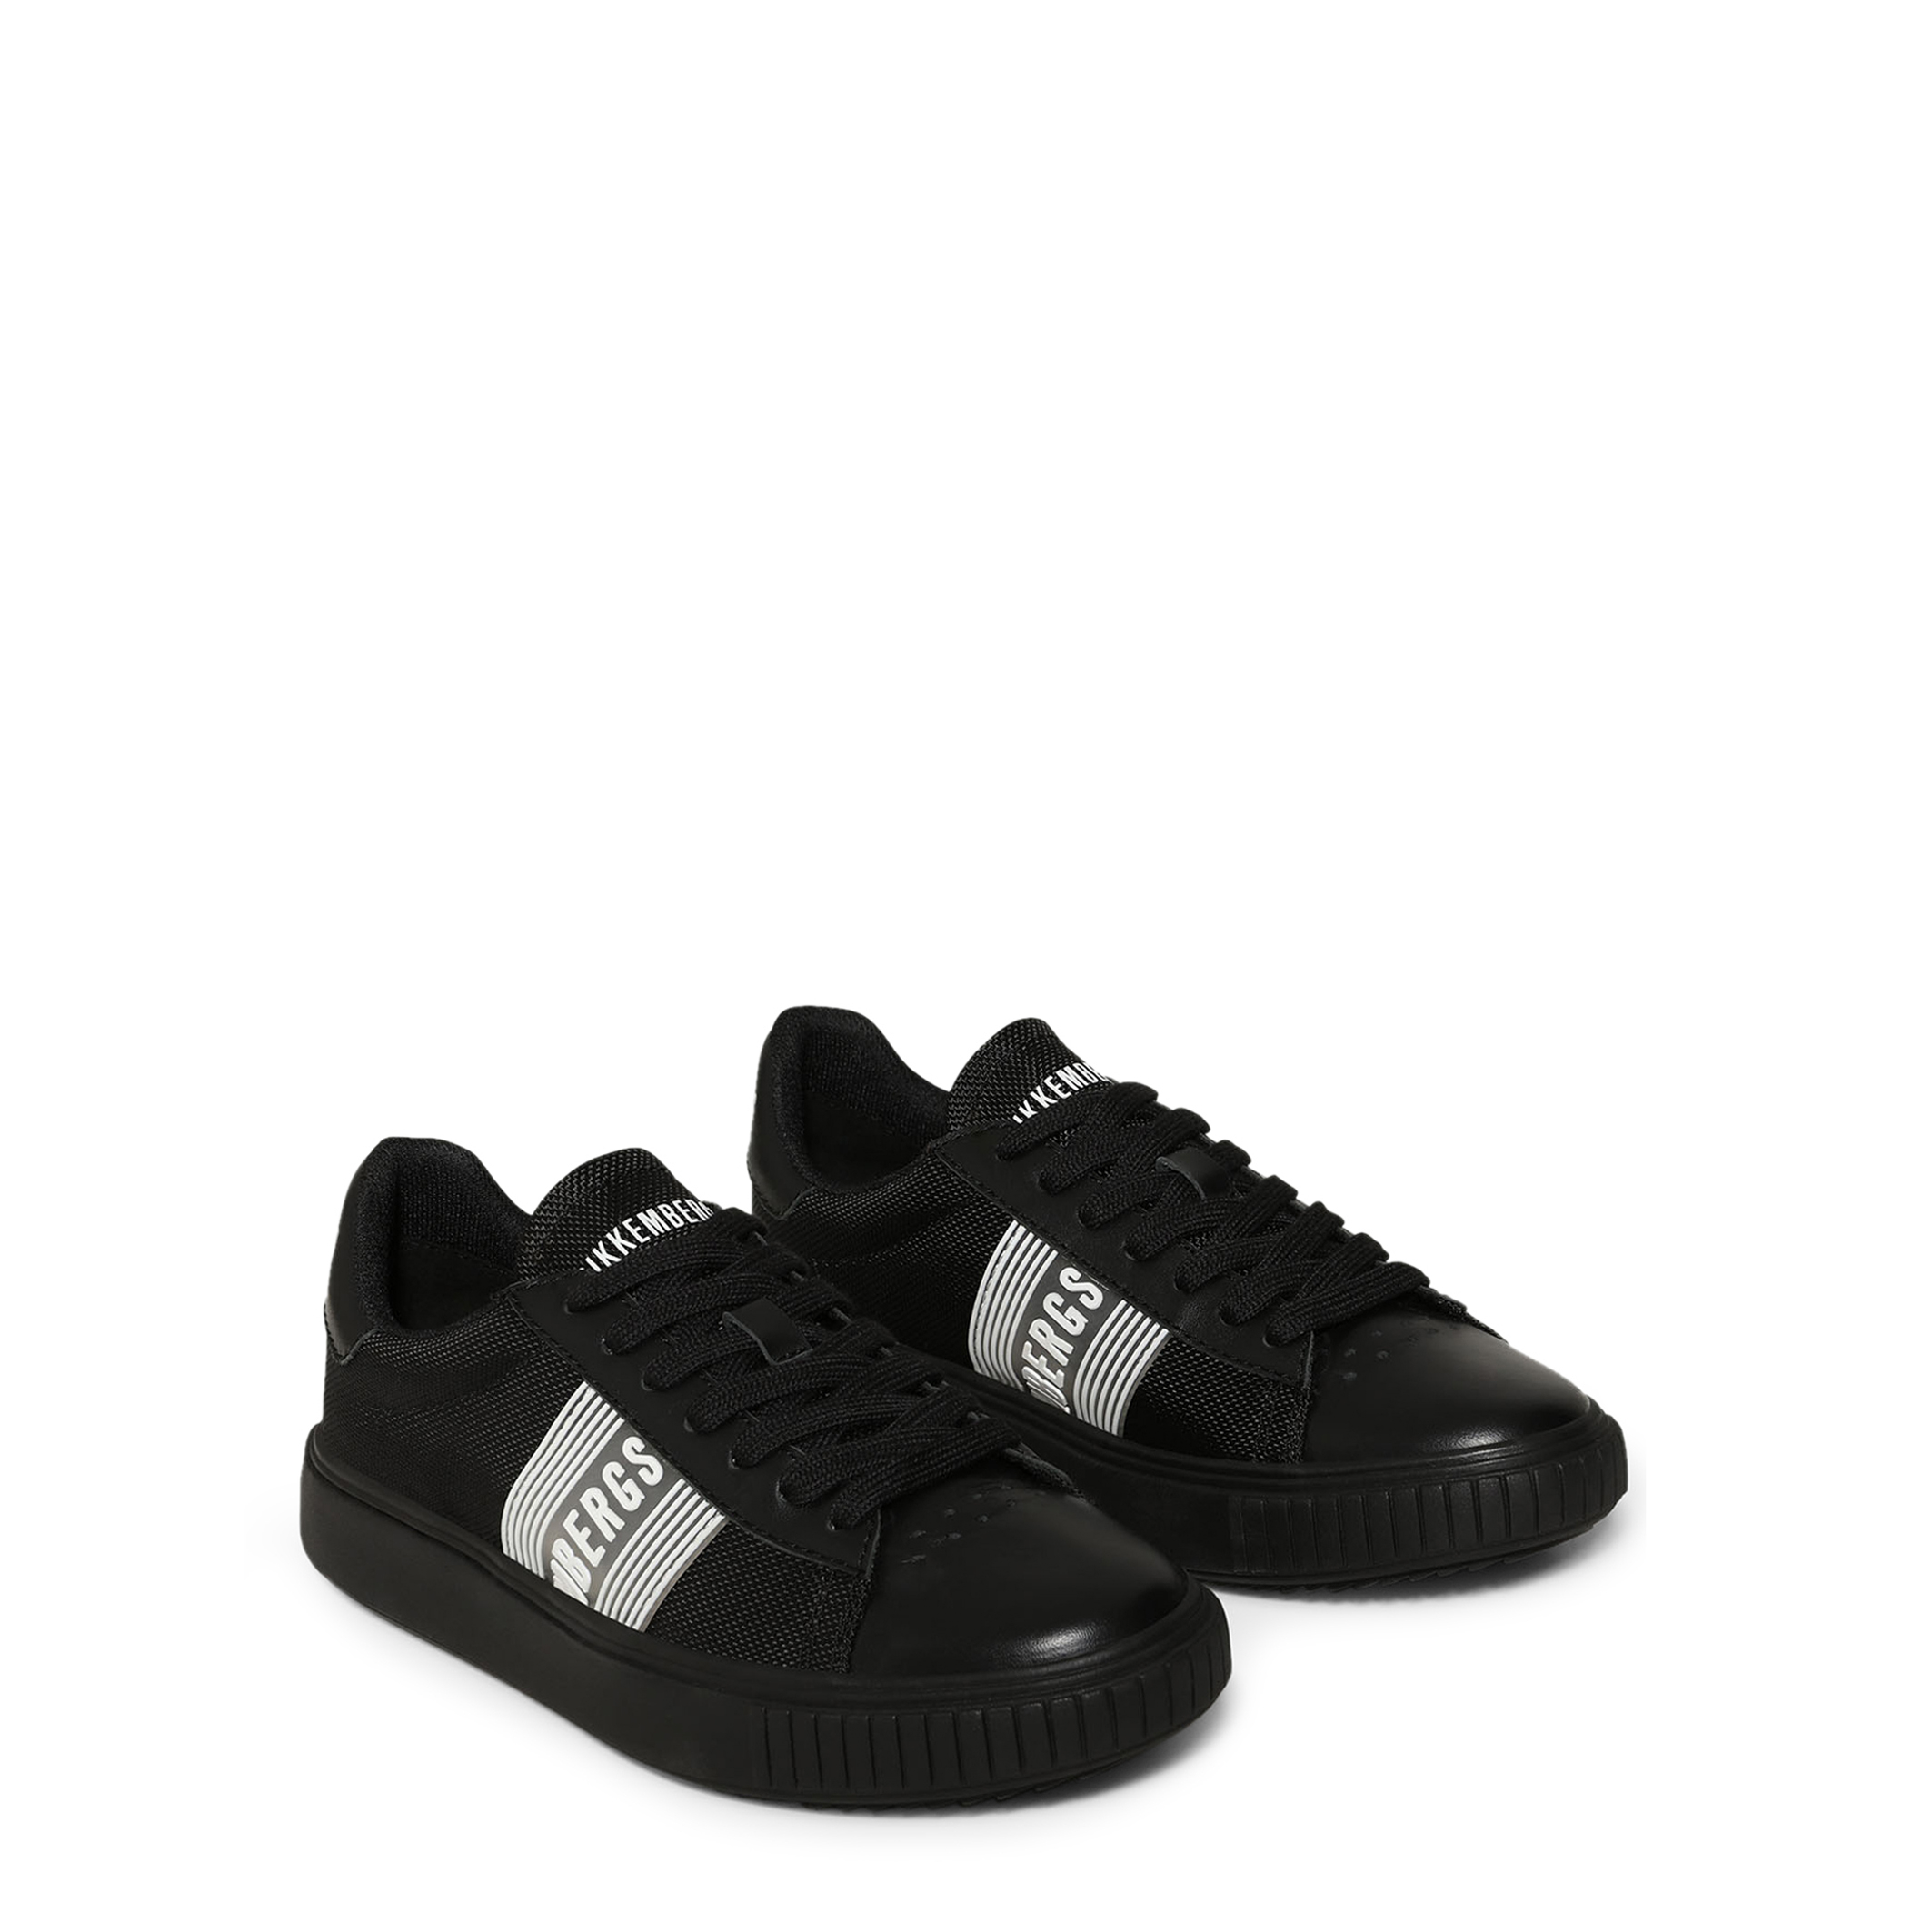 Baskets / Sneakers  Bikkembergs CLARION_B4BKW0038_001 black